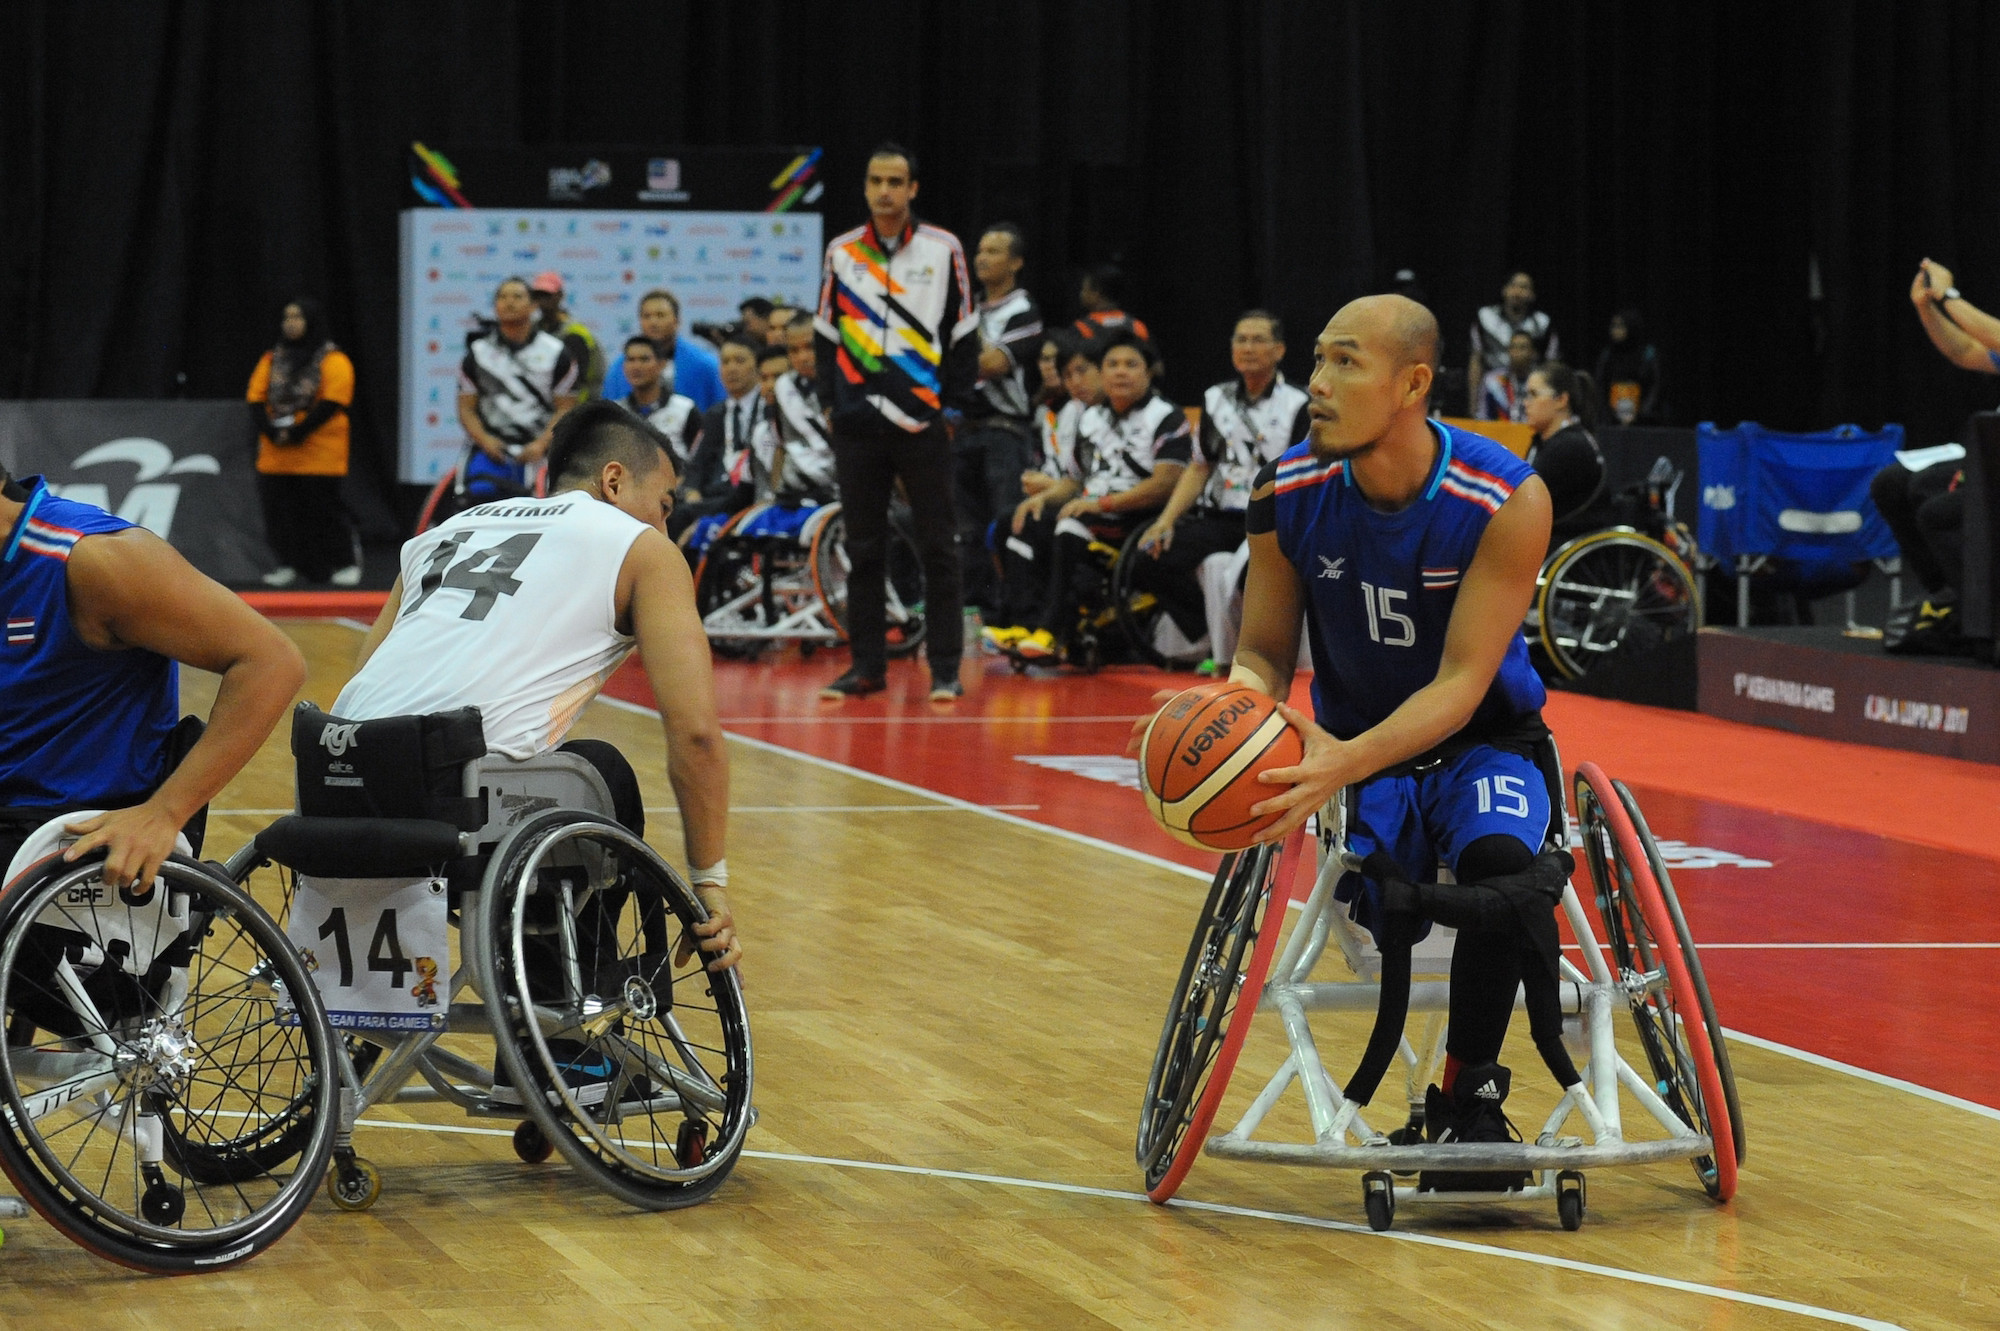 The inaugural 3x3 Open World Championships will take place during the 2020 IWAS World Games ©IWBF